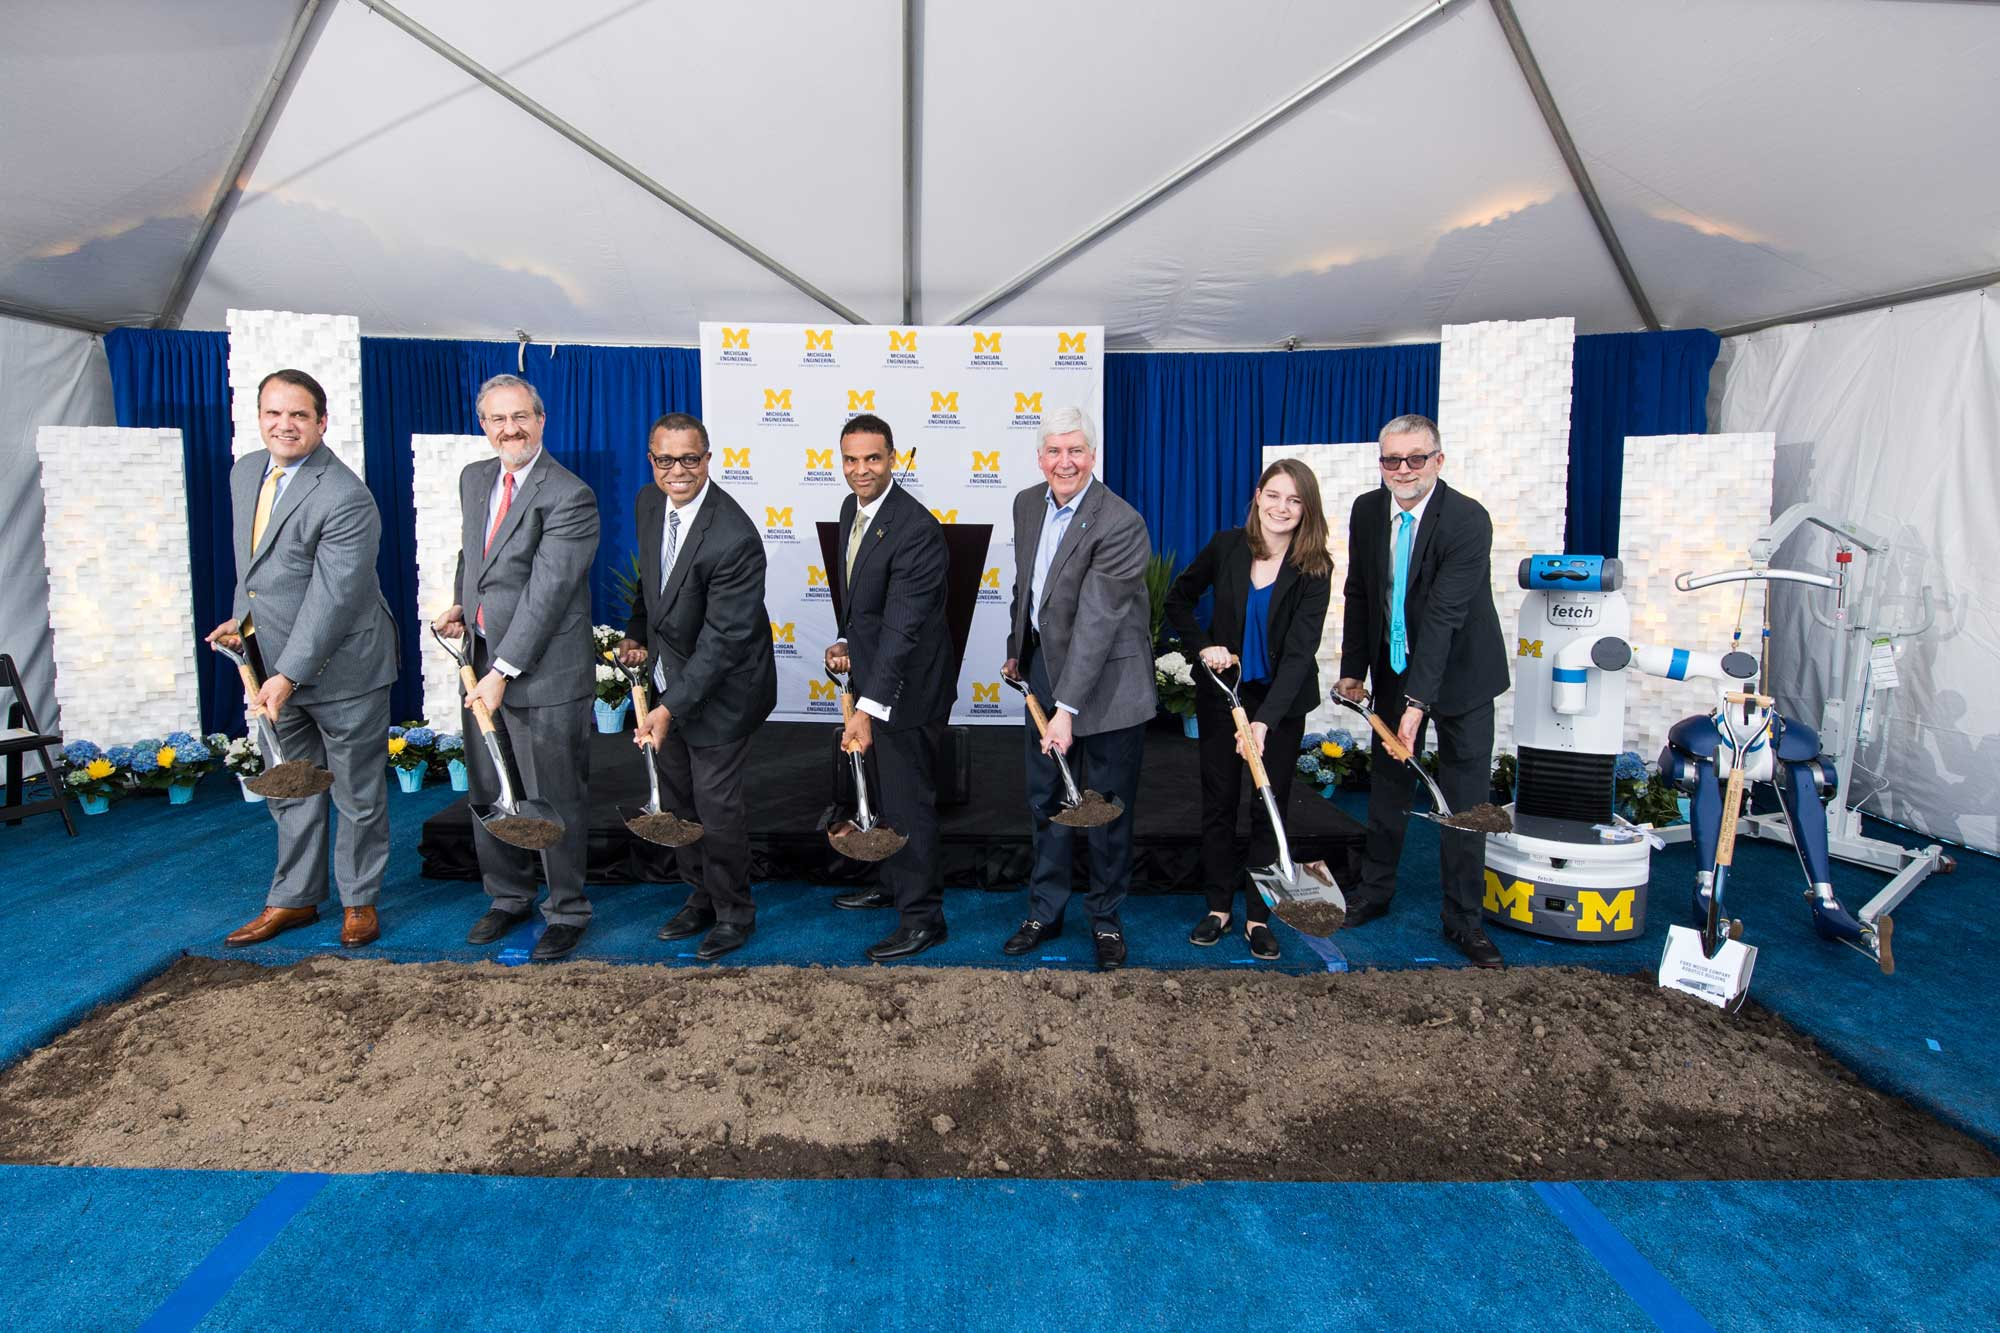 (Left to right) University of Michigan Regent Michael Behm; President Mark Schlissel; Ken Washington, vice president of research and advanced engineering and chief technology officer of Ford Motor Co.; Michigan Engineering Dean Alec D. Gallimore, Governor Rick Snyder; Katherine Skinner, doctoral student at Michigan Robotics; and Jessy Grizzle, director of the U-M Robotics Institute, break ground on the new Ford Motor Company Robotics Building. Image credit: Michigan Photography